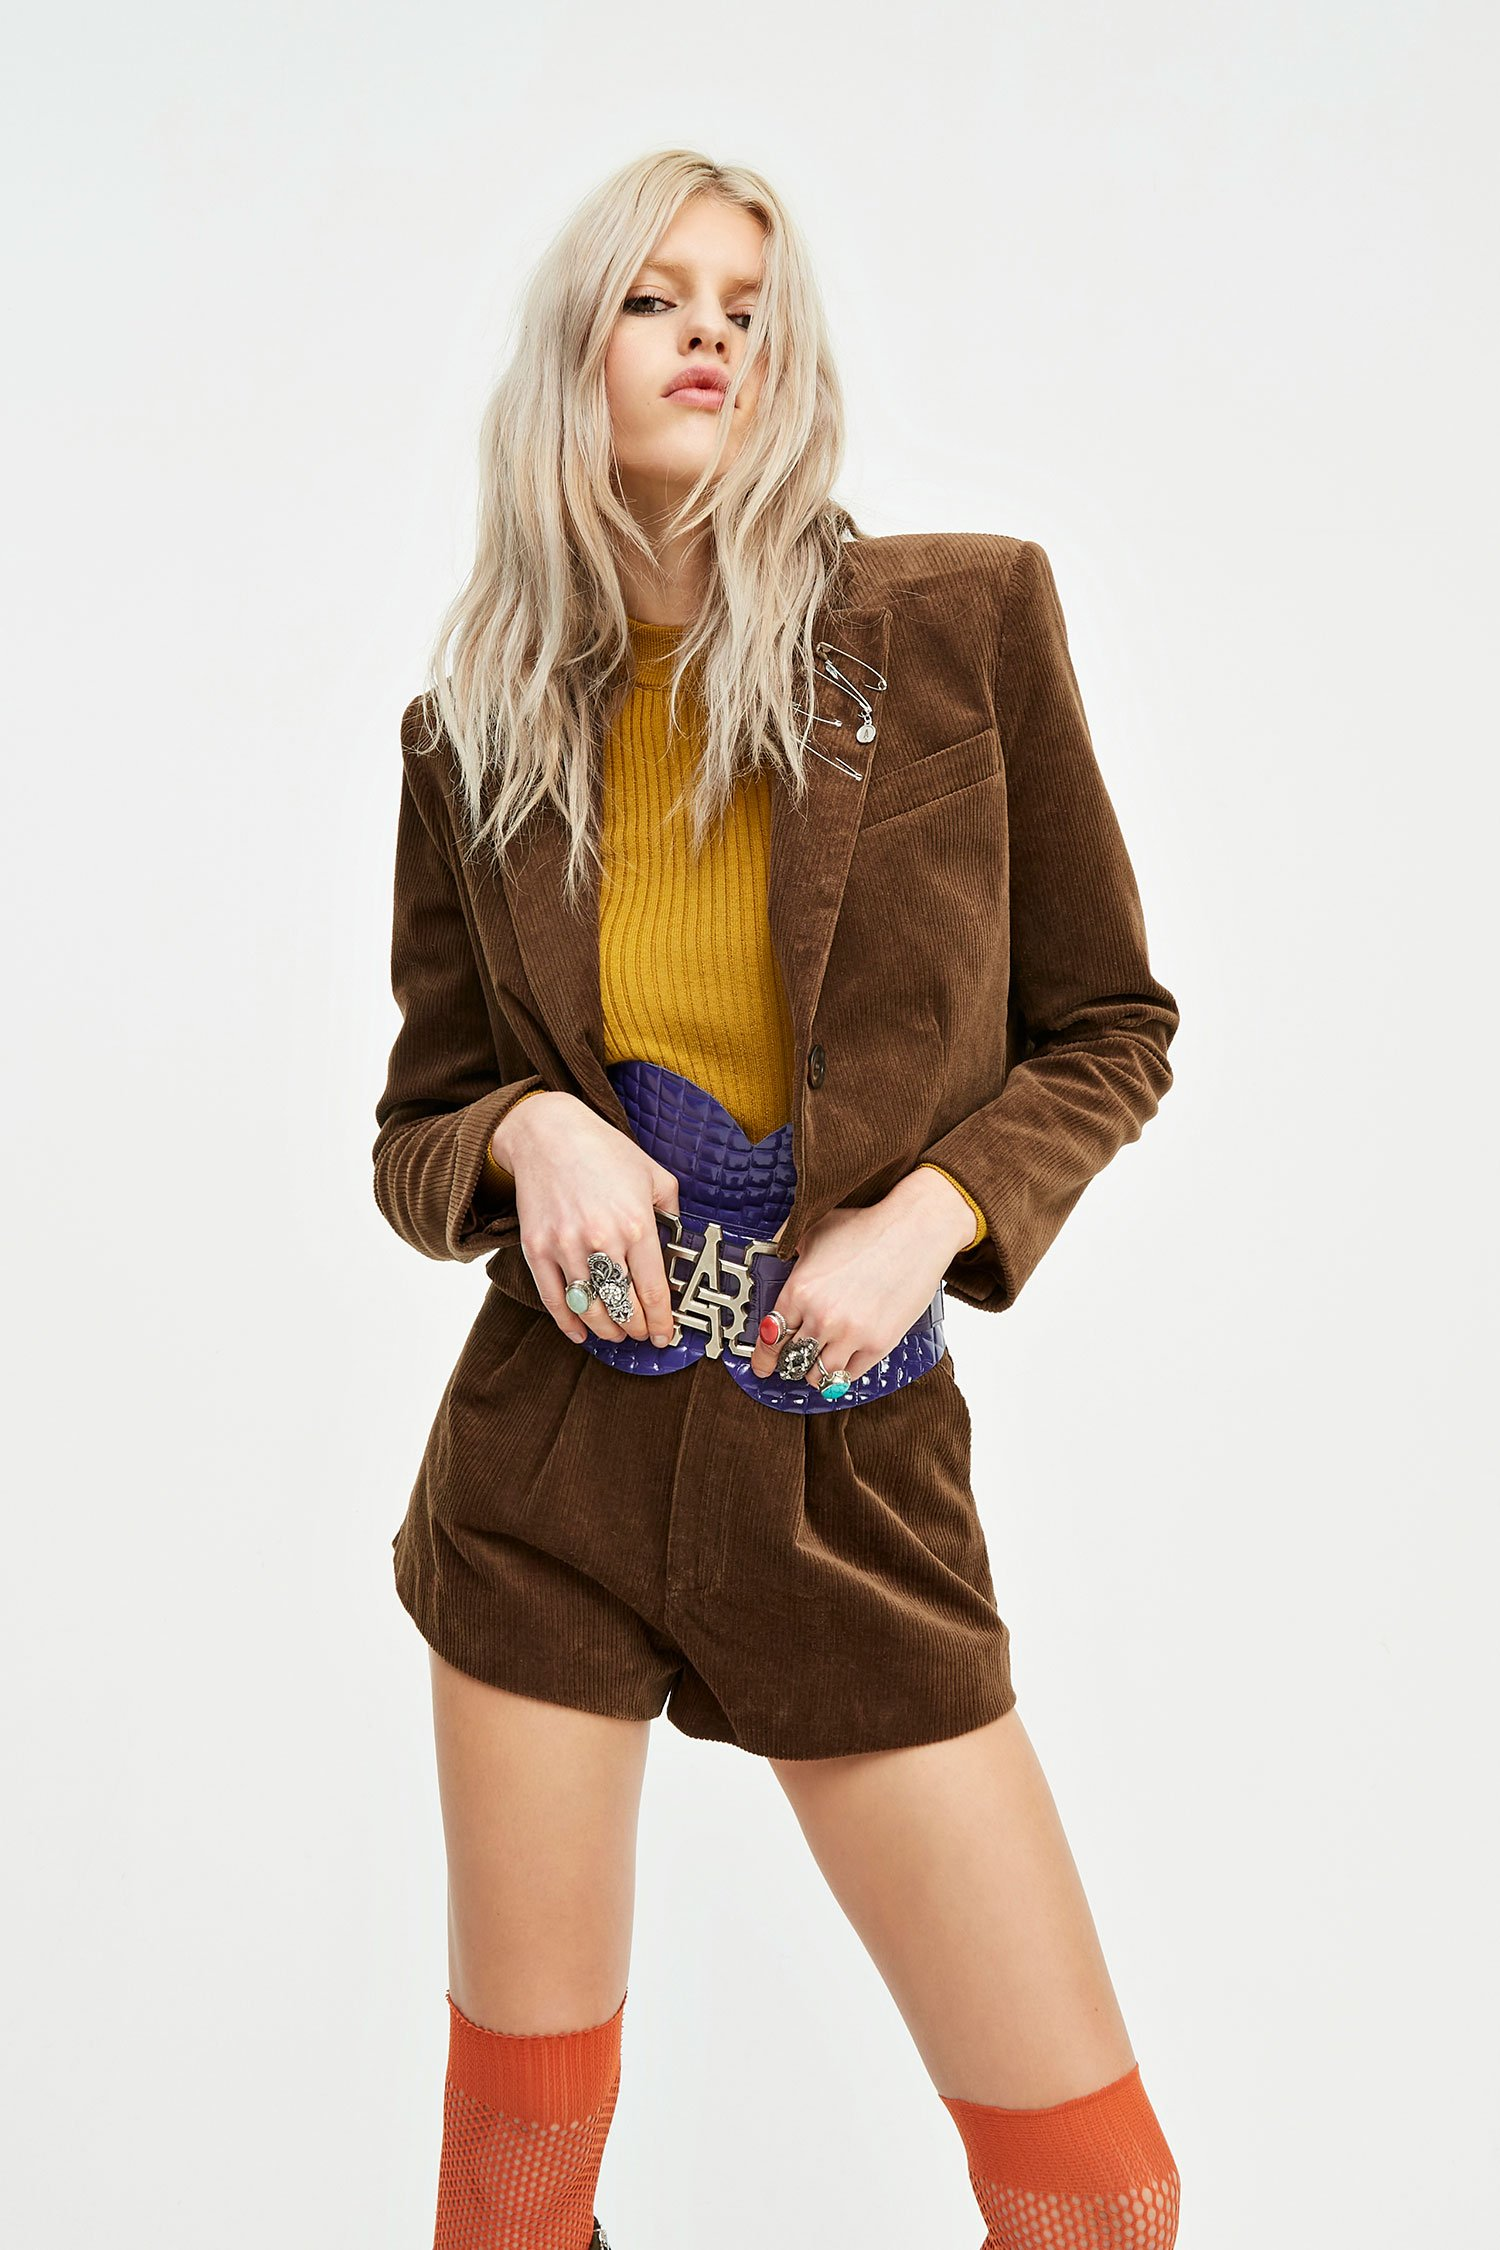 SHOPPING ON LINE ANIYE BY VIRGY SHORT  NEW COLLECTION  WOMEN'S FALL/WINTER 2022